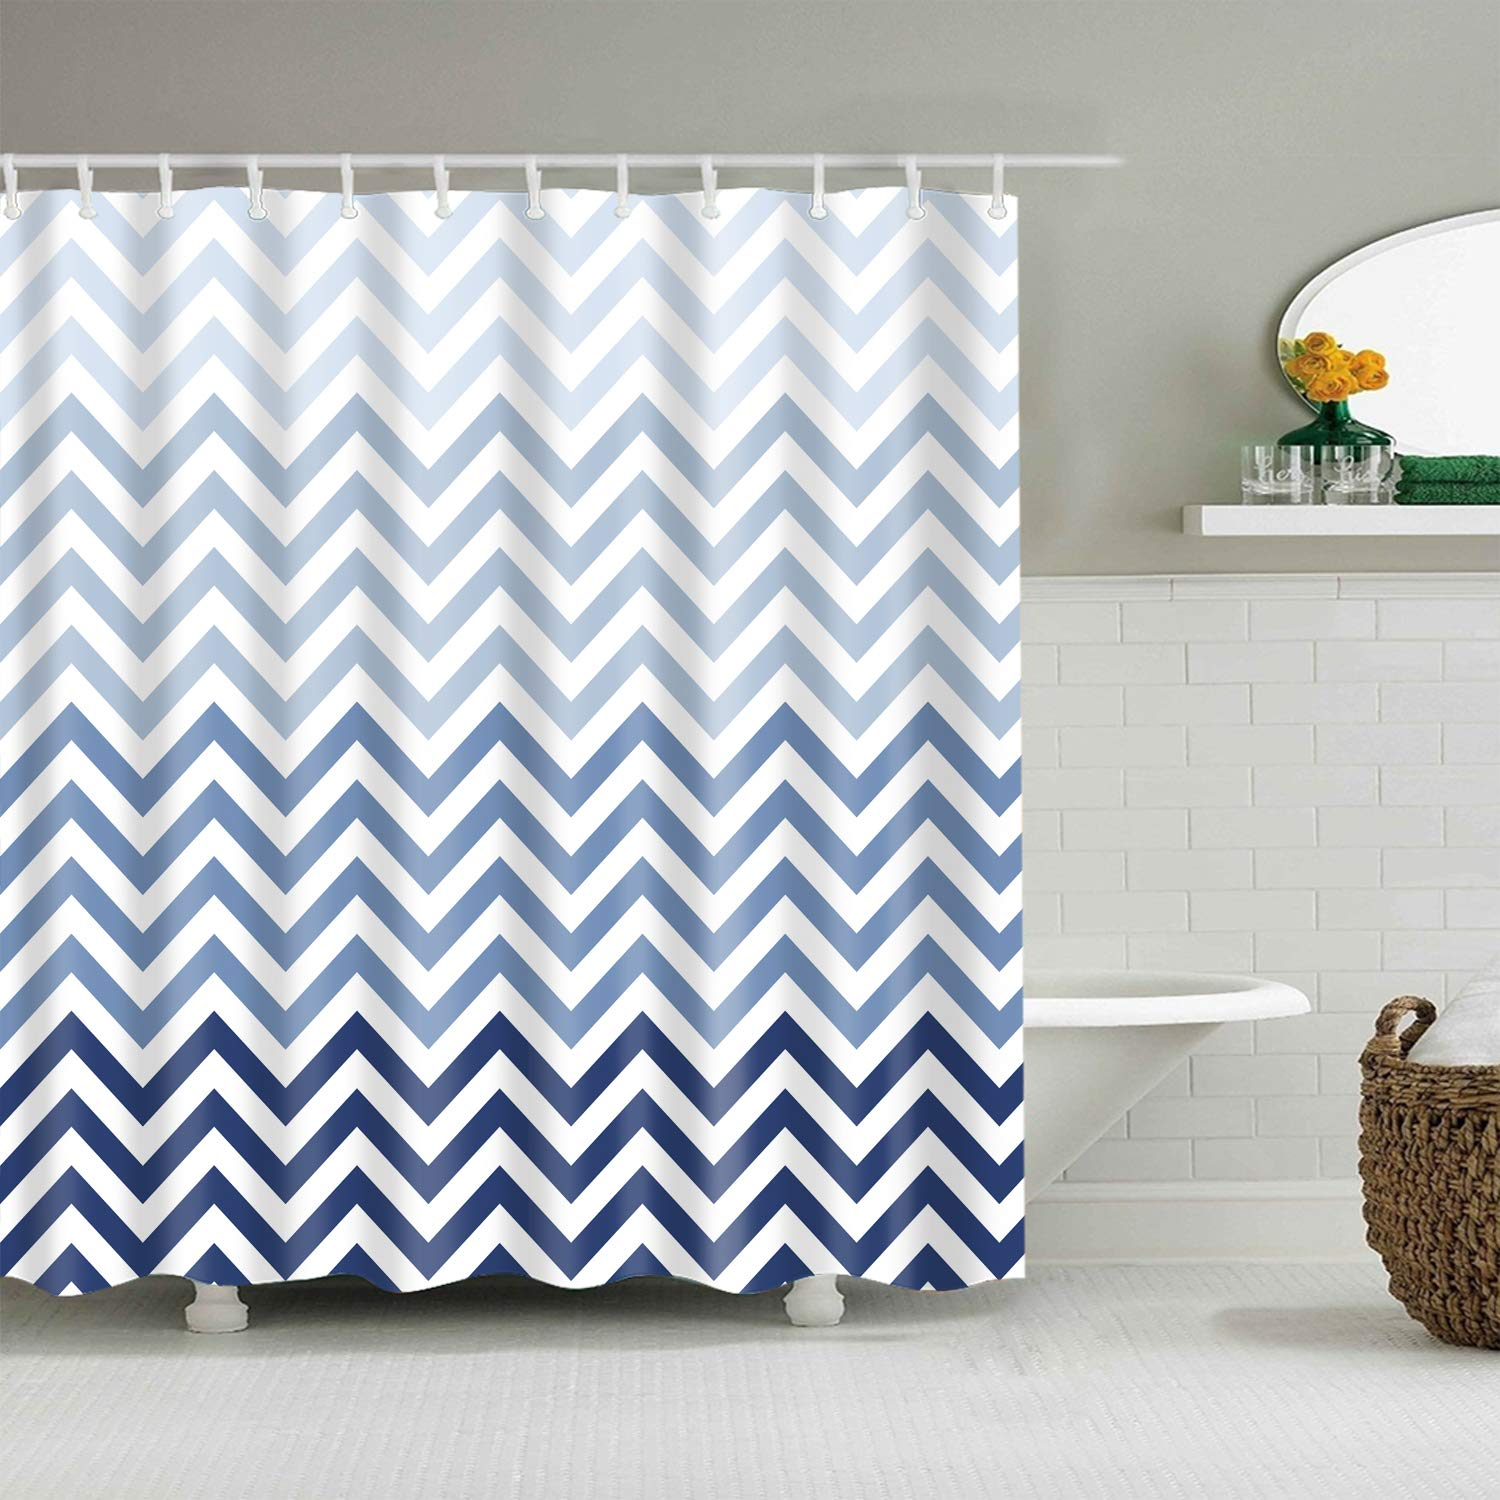 Bartori Home Decorative Shower Curtain With Free Hooks Dark Blue Gradual Change To Light Blue With Wavy Line On White Background Waterproof Polyester